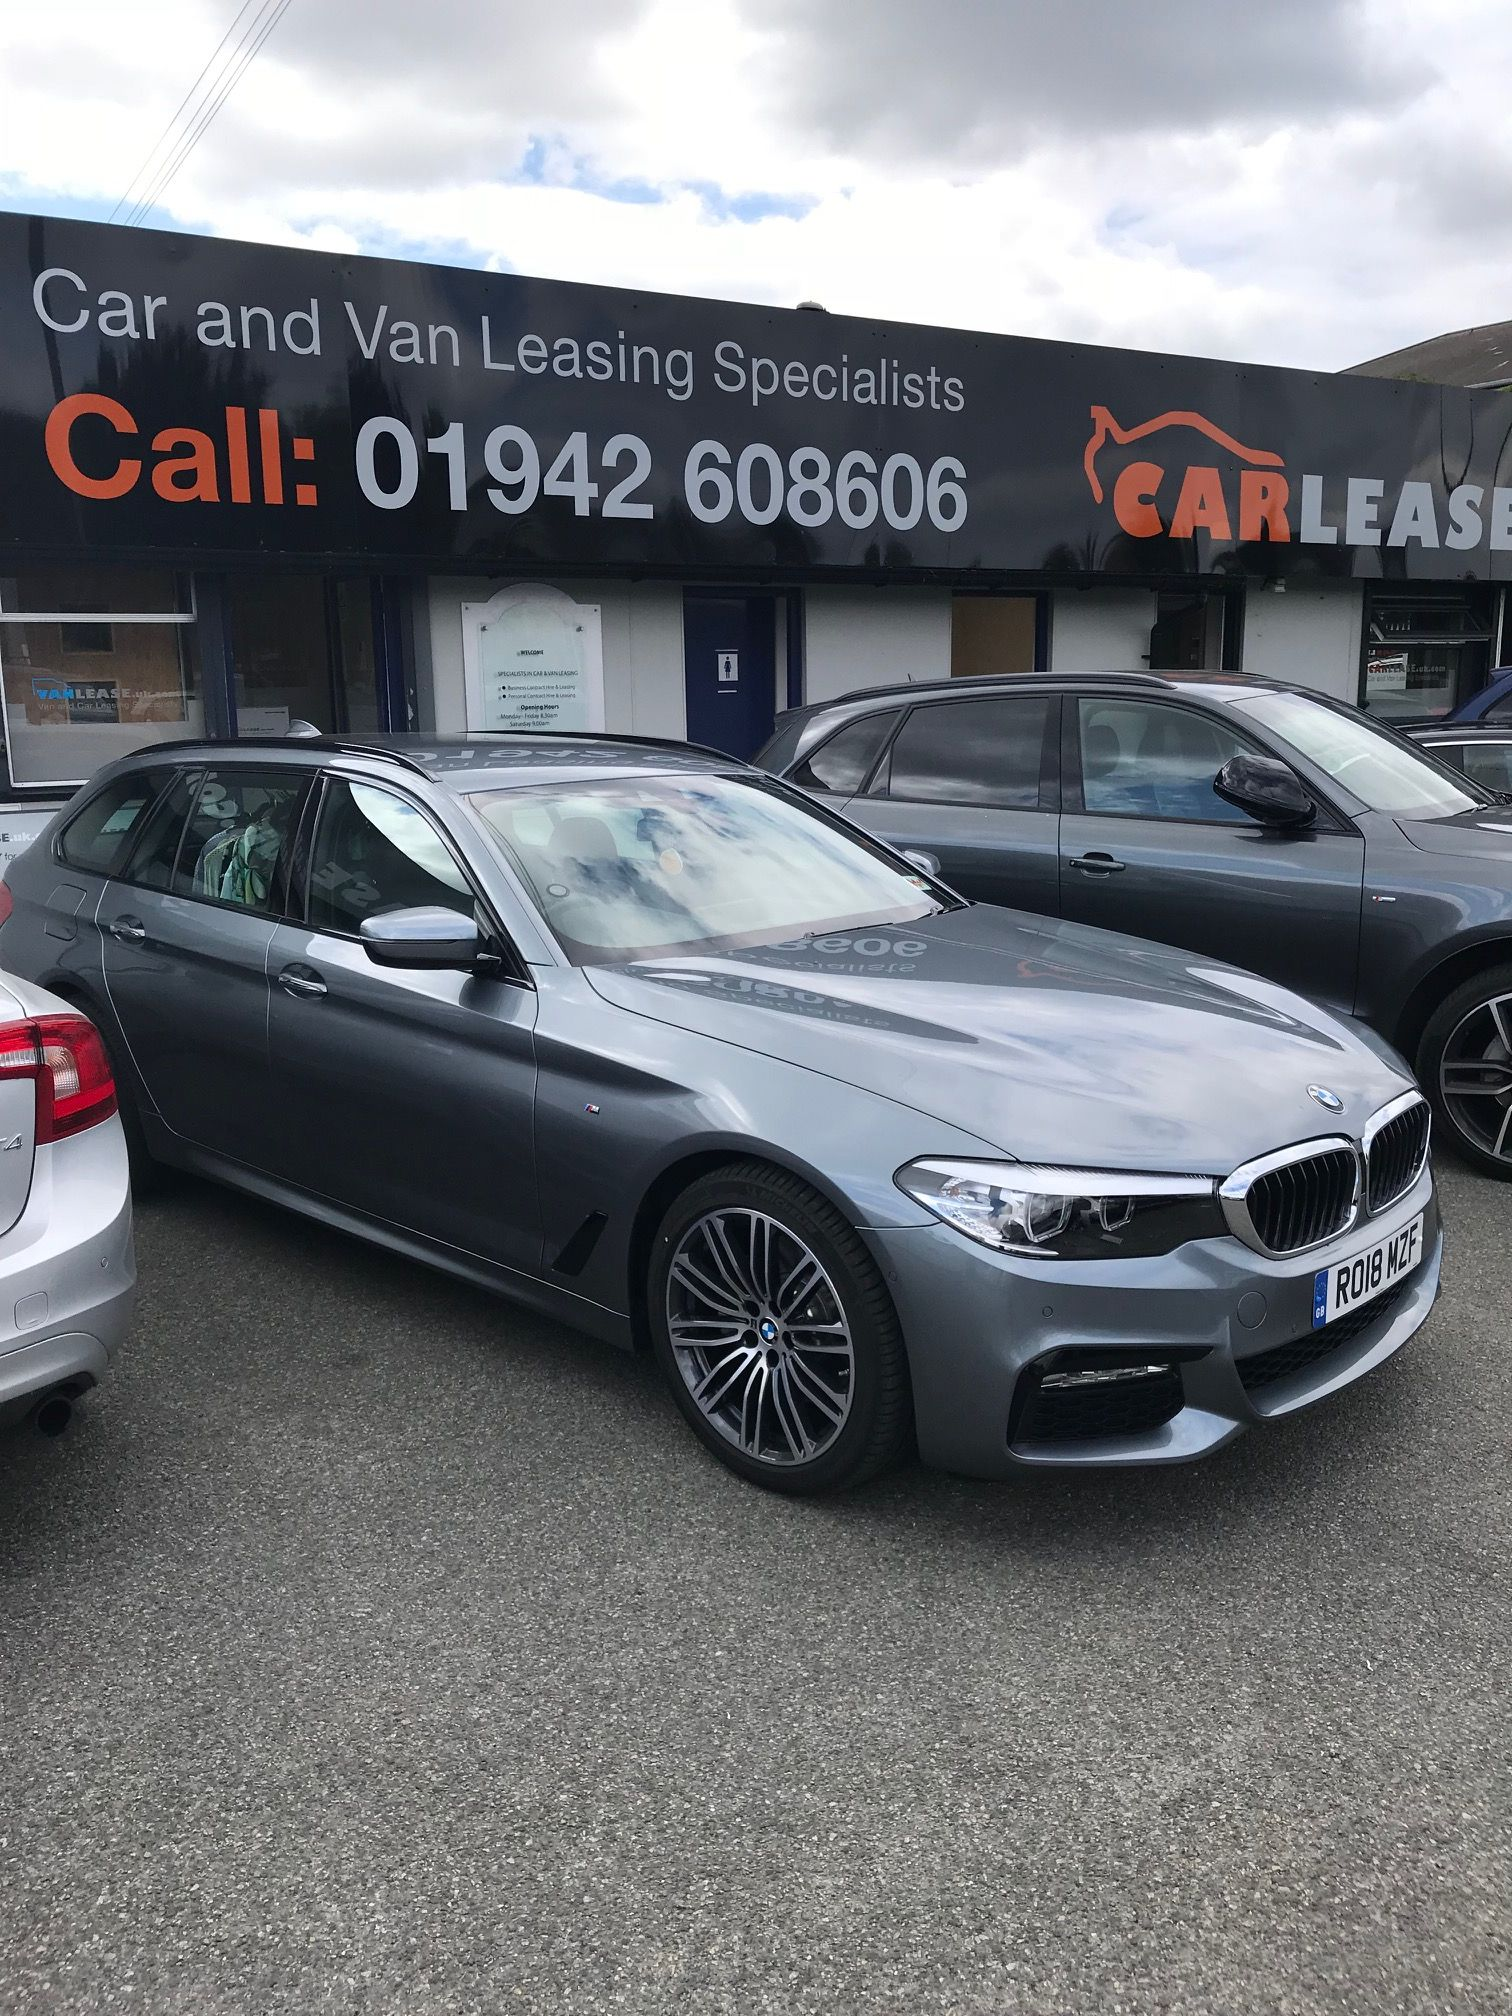 The Bmw 5 Series Touring 520i M Sport 5dr Auto Cars Carleasing